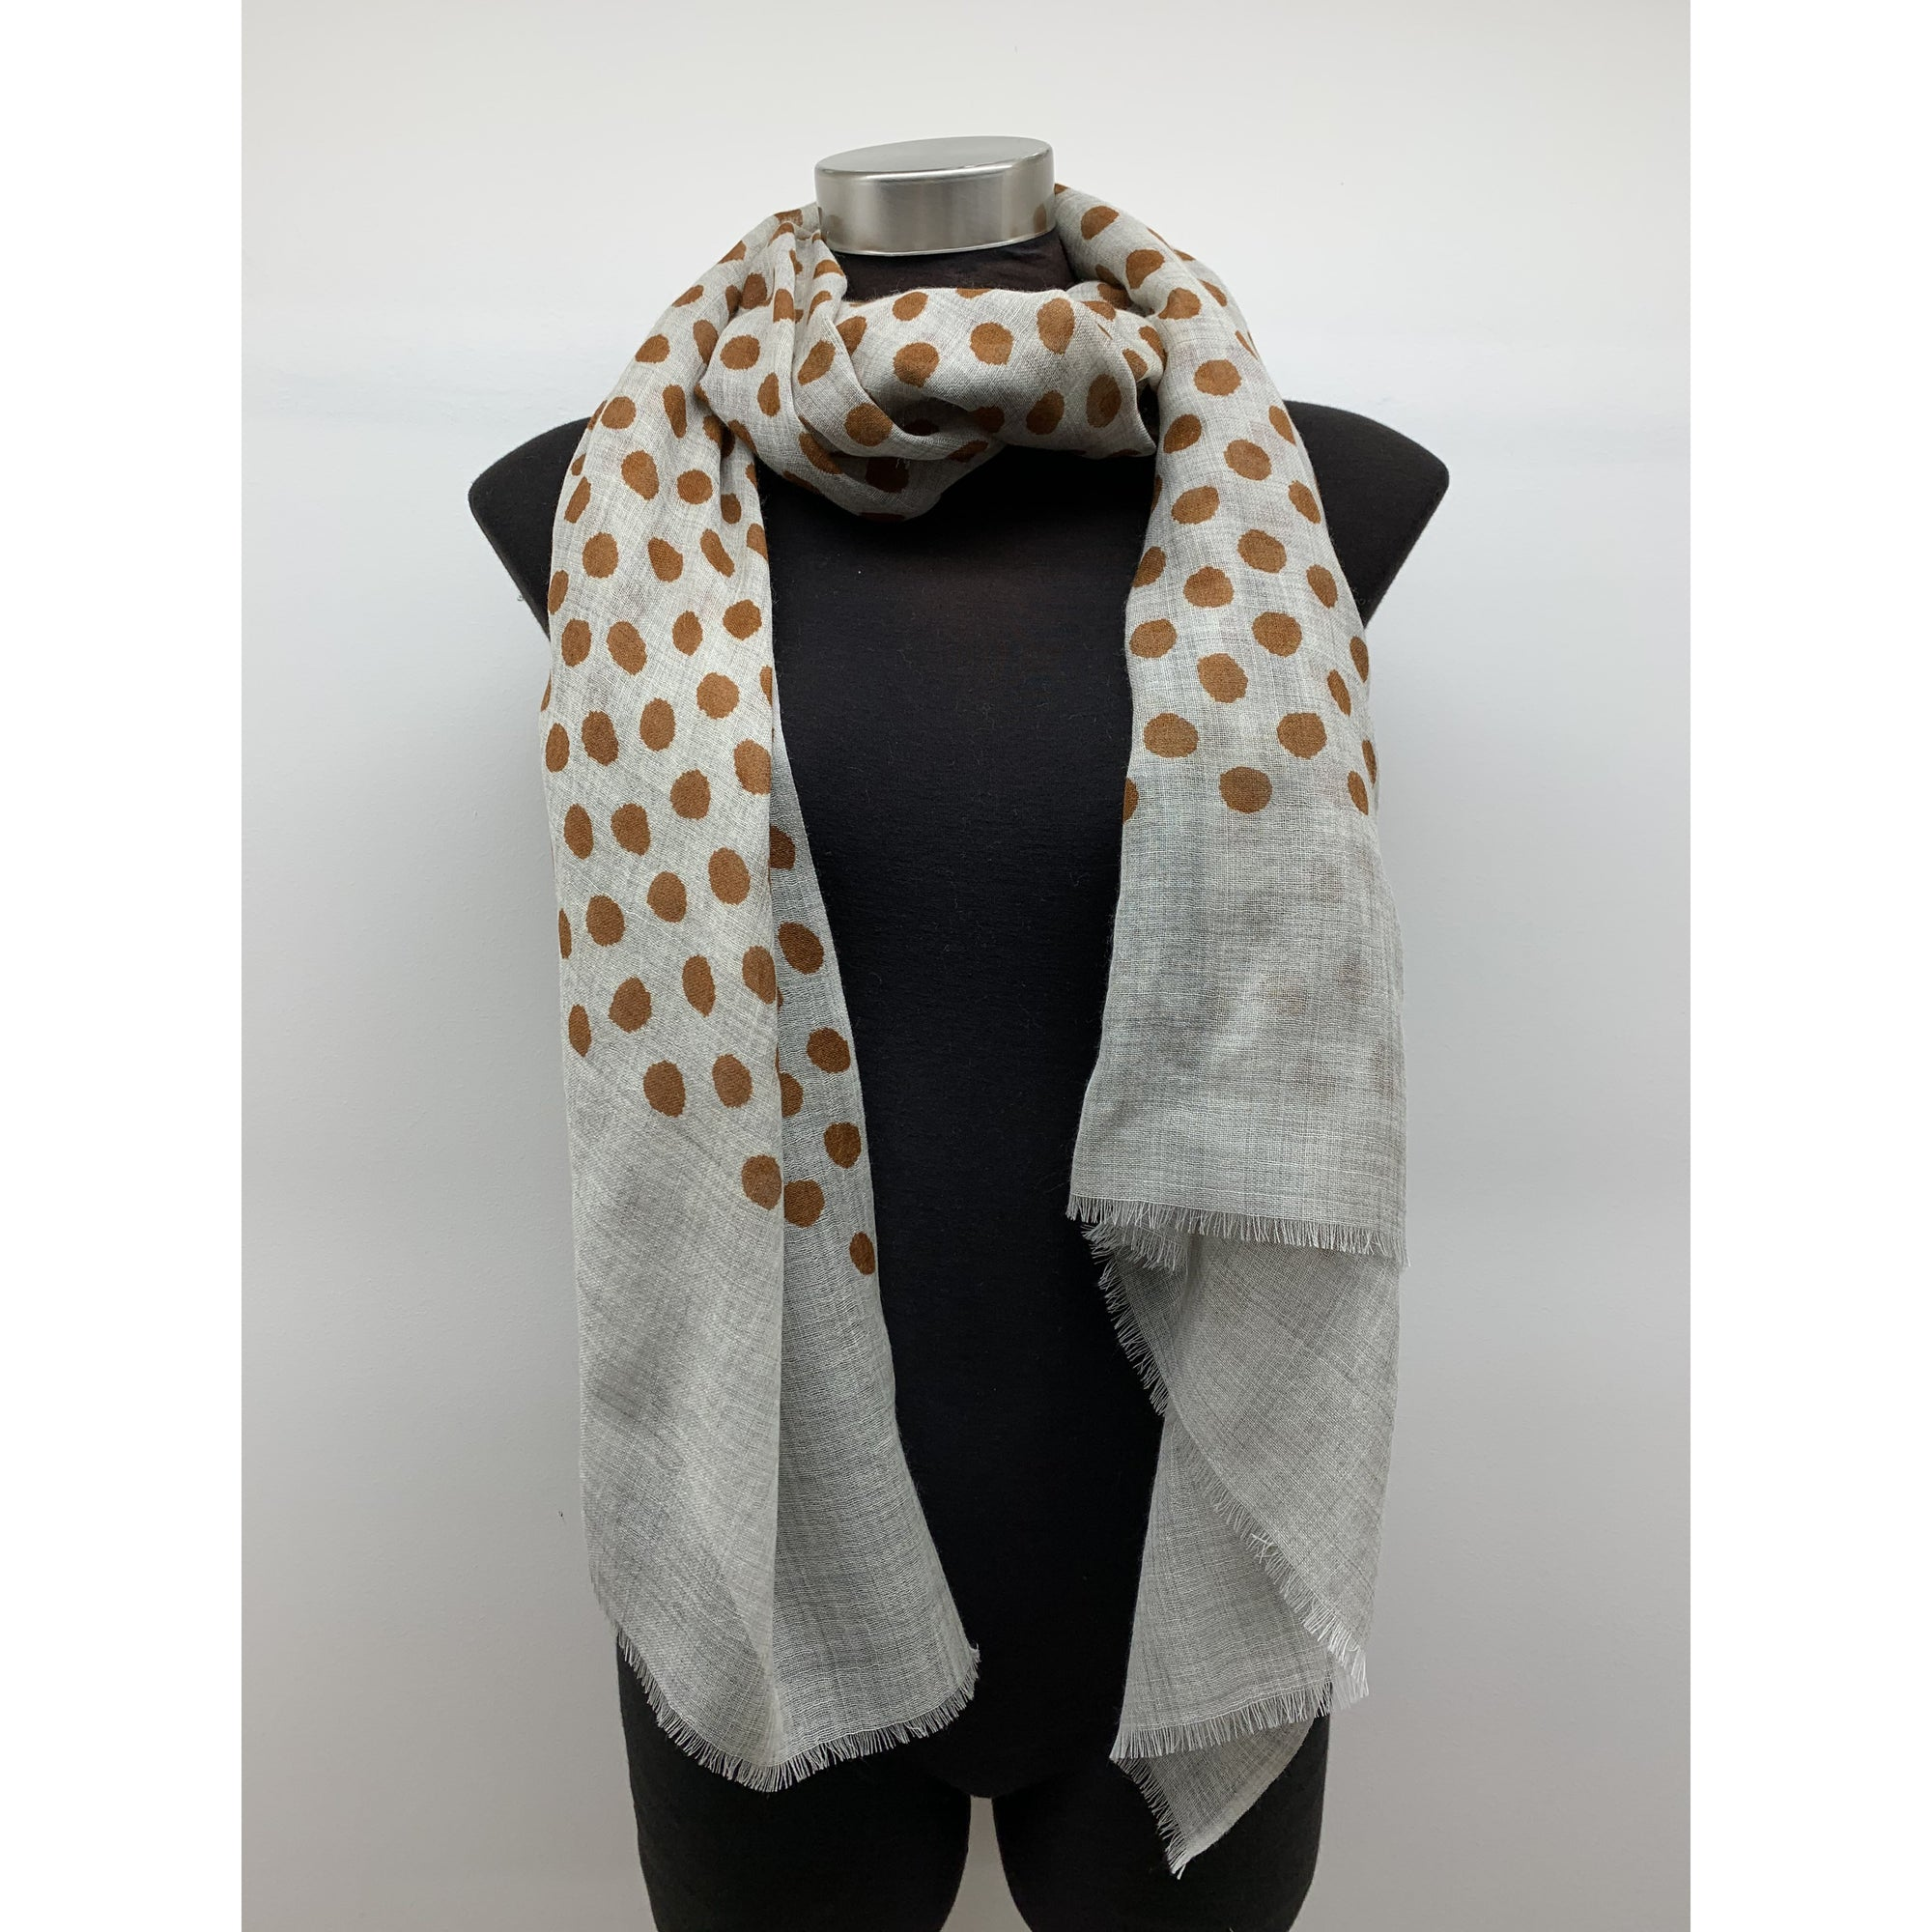 See Saw Wool/Silk spot scarf in Ginger spot